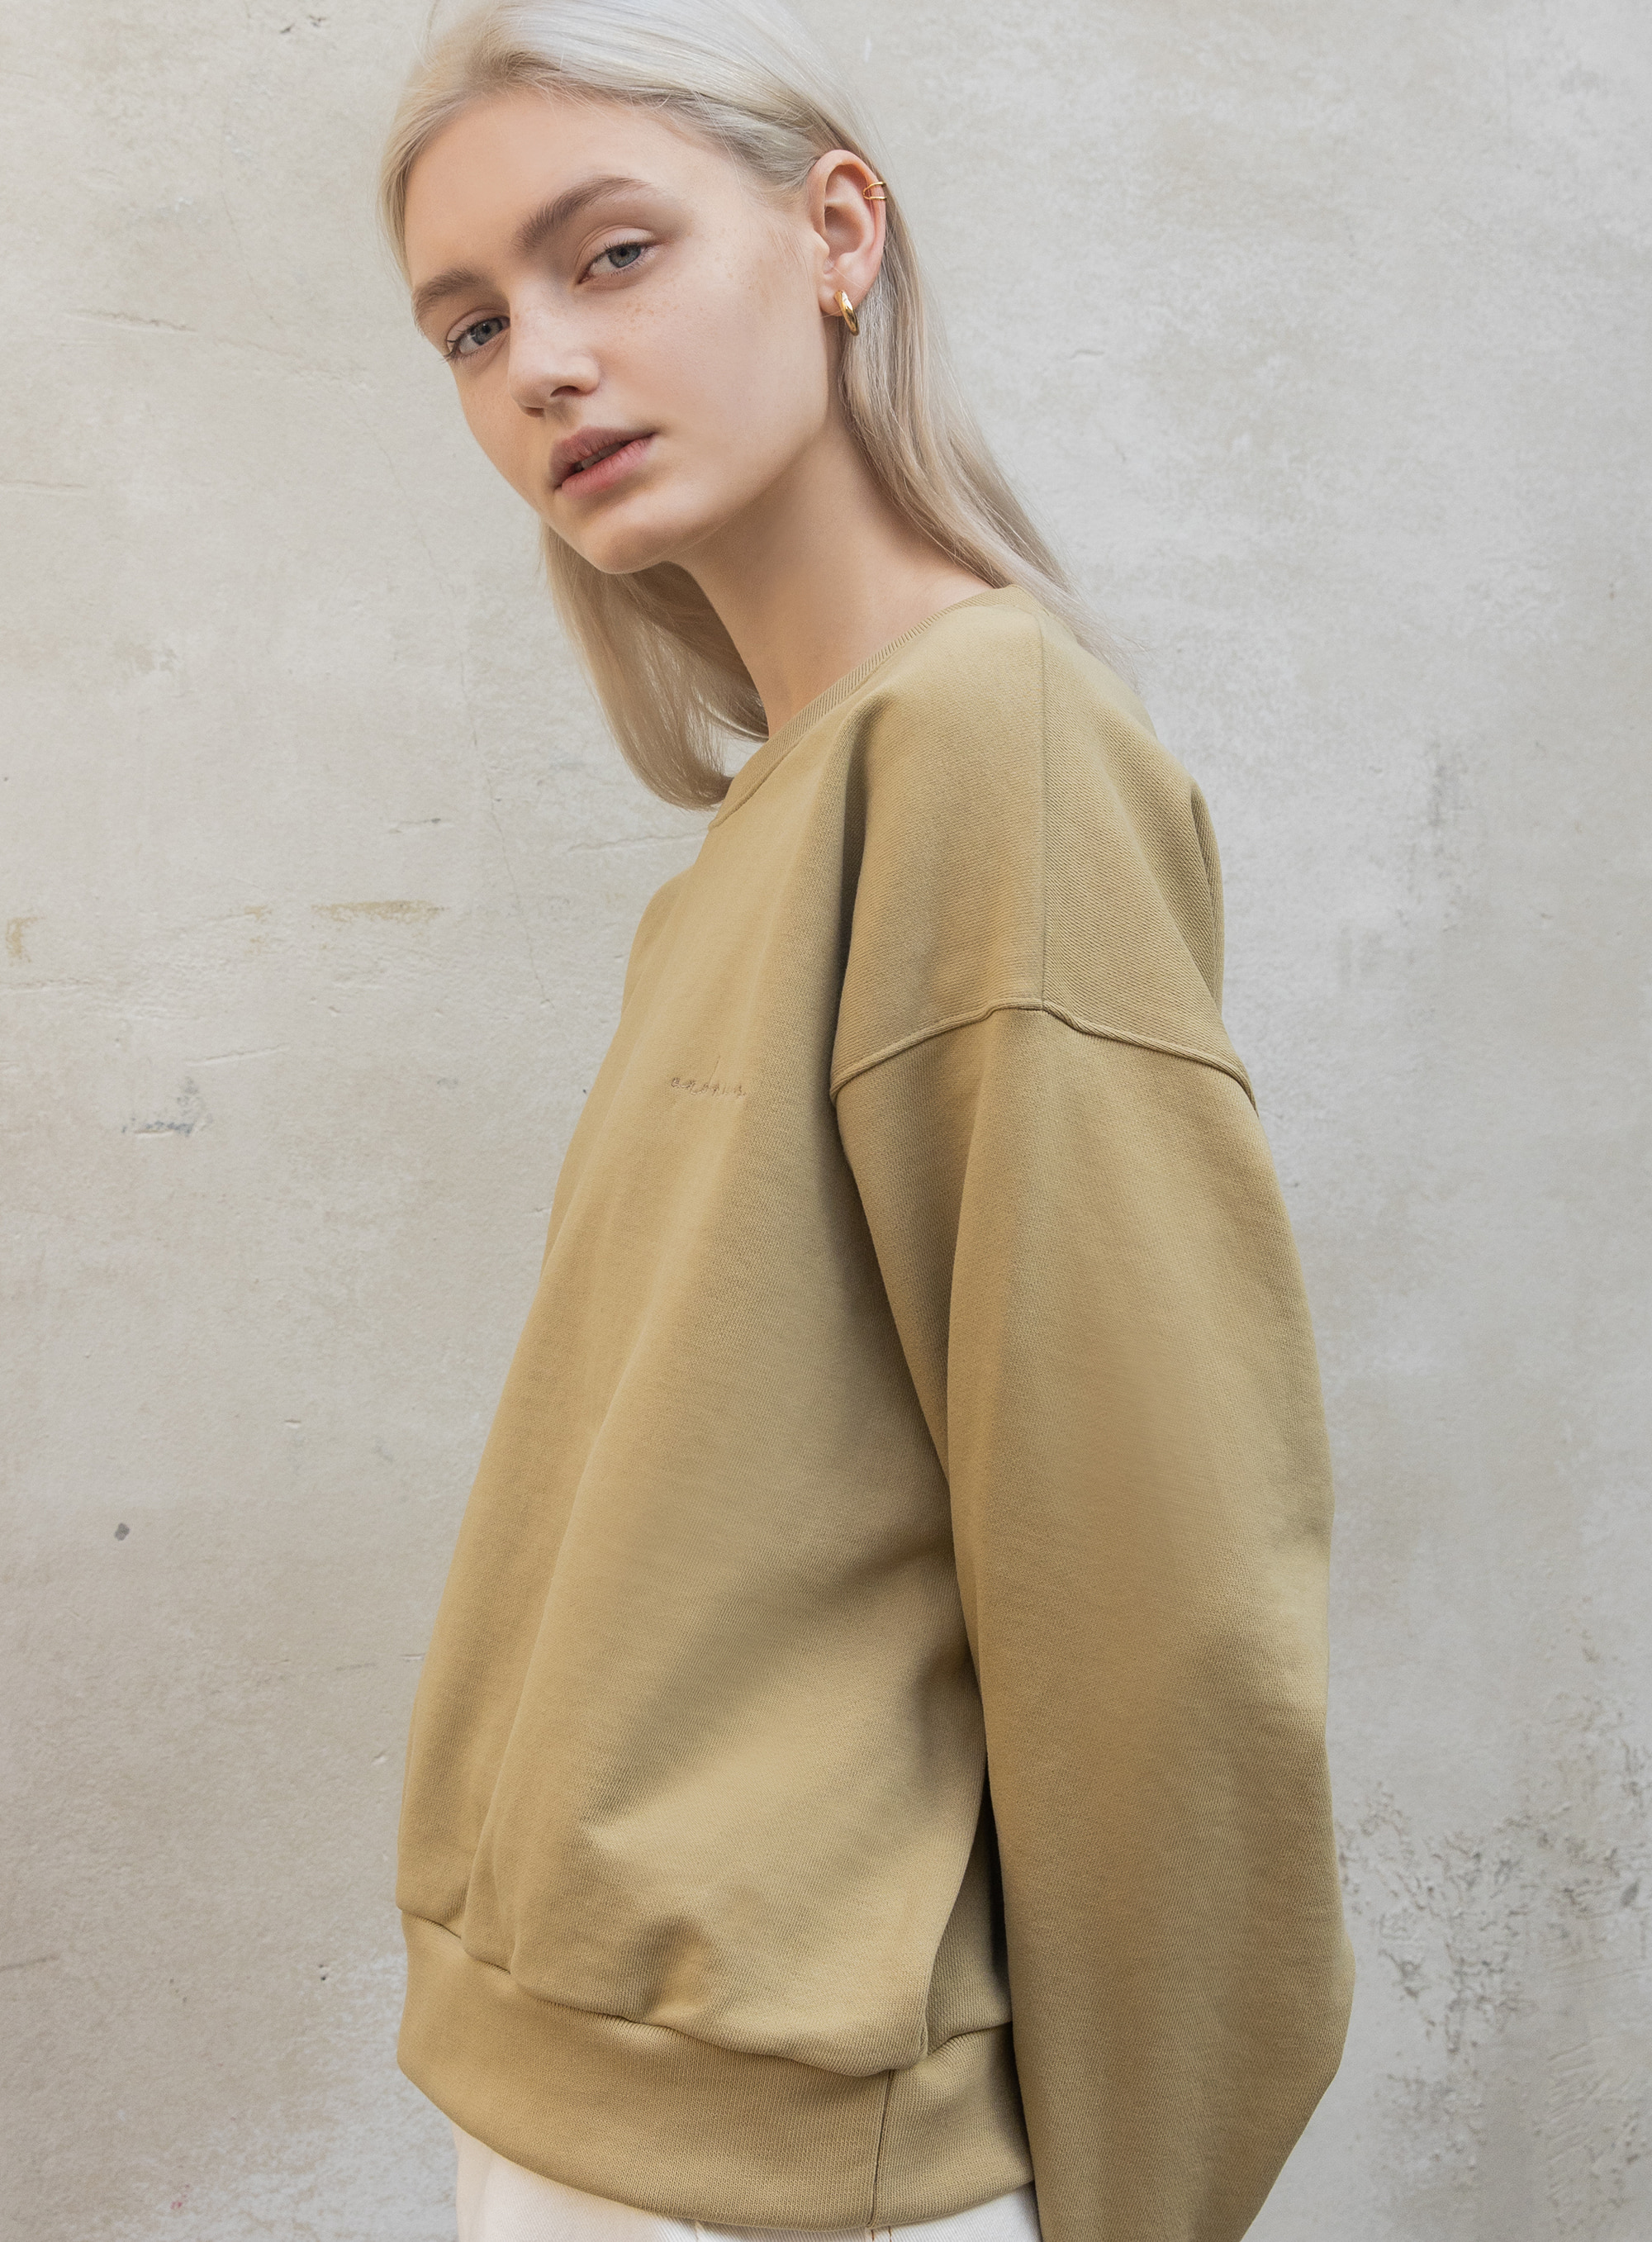 Embroider sweatshirt (Olive)